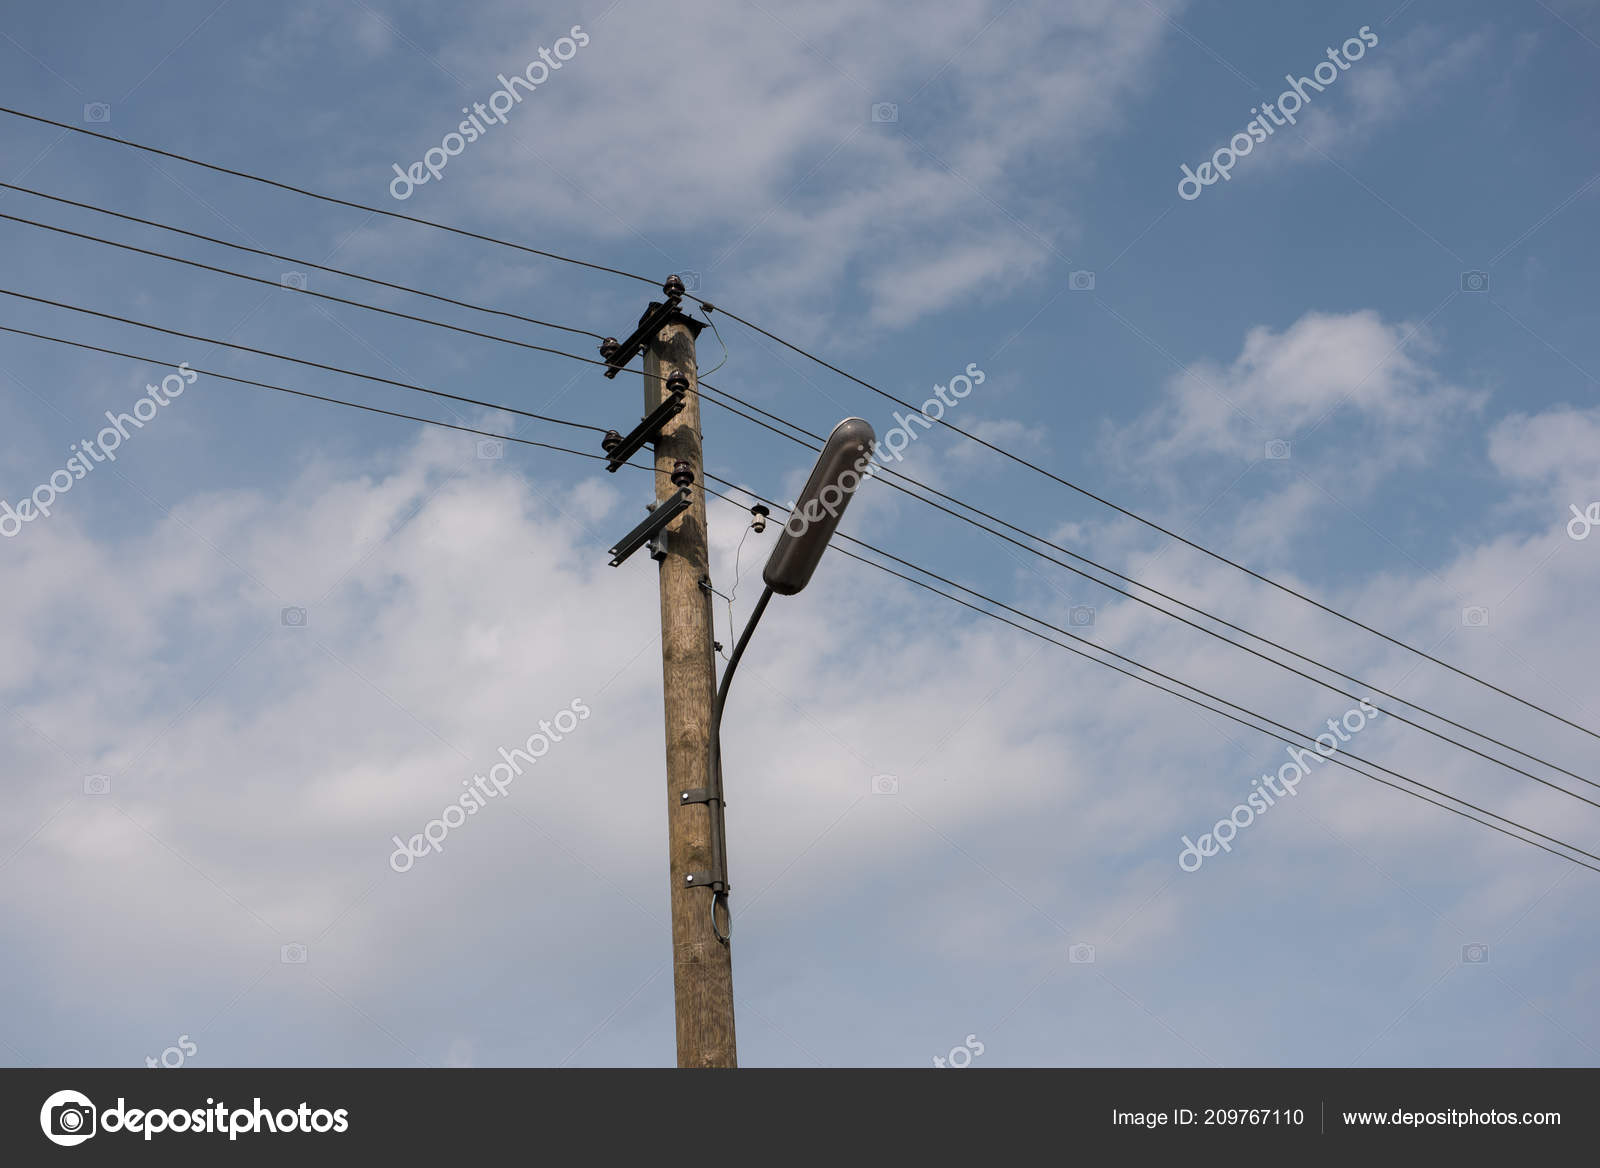 hight resolution of wooden street lamp post electric wires blue sky white clouds stock photo